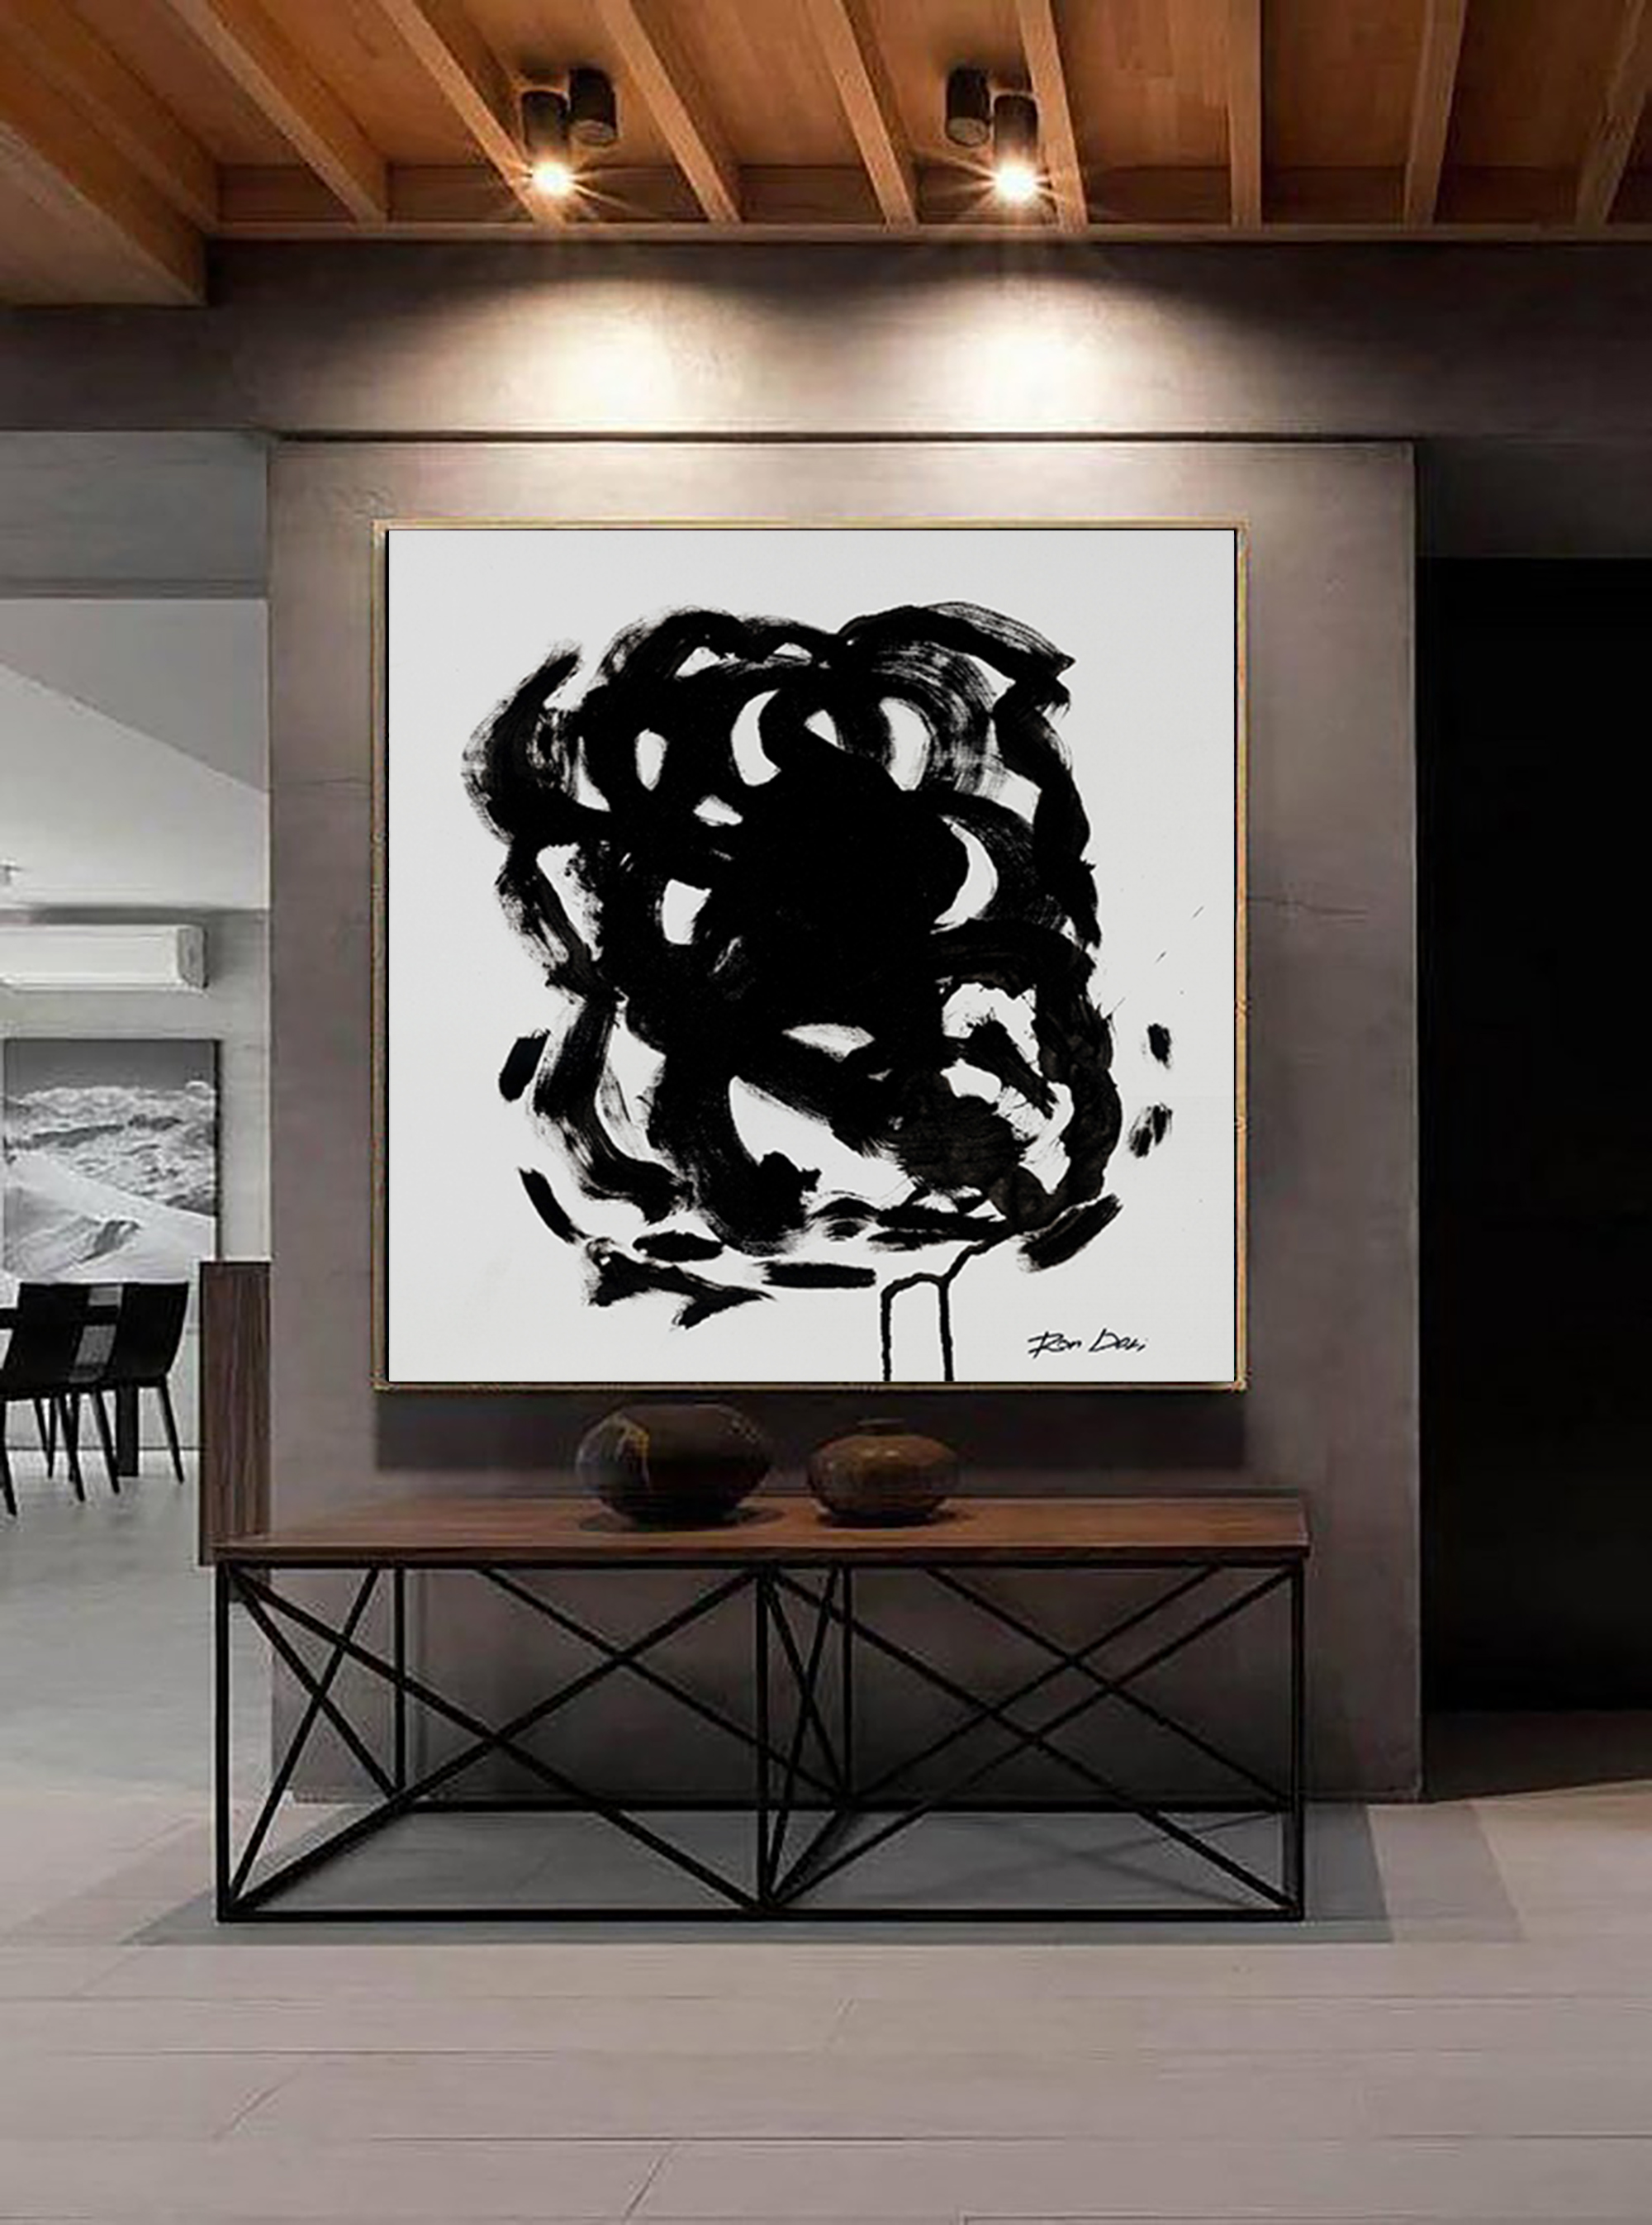 large-black-abstract-painting-print-ron-deri